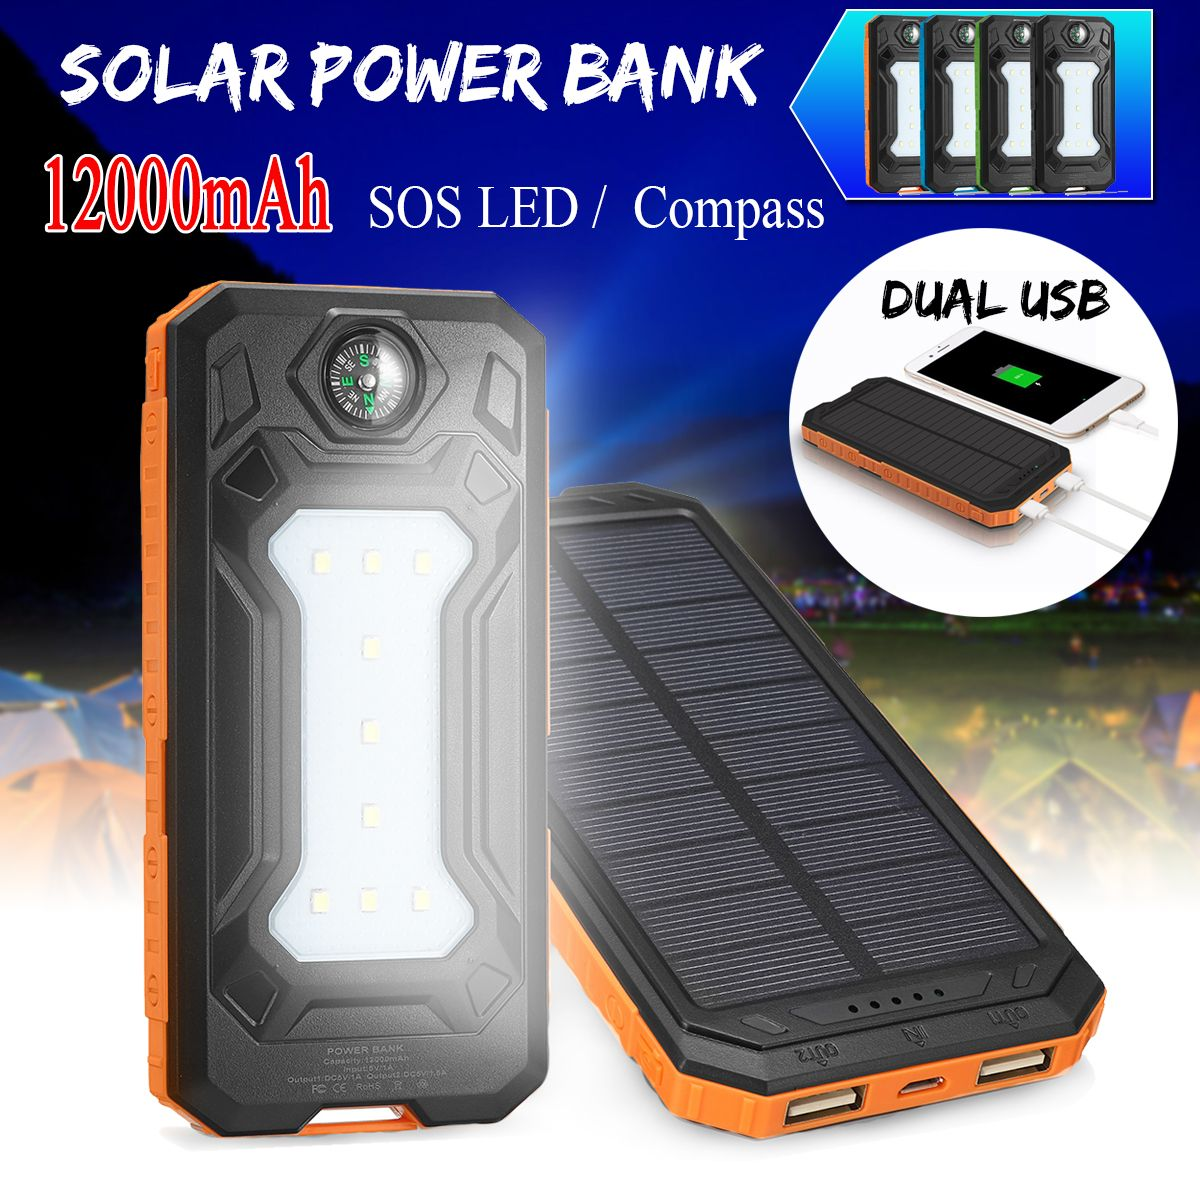 12000mah Solar Power Bank Battery Fast Charger Dual Usb Sos Led Light Compass Banggood 12000mah Solar Power B